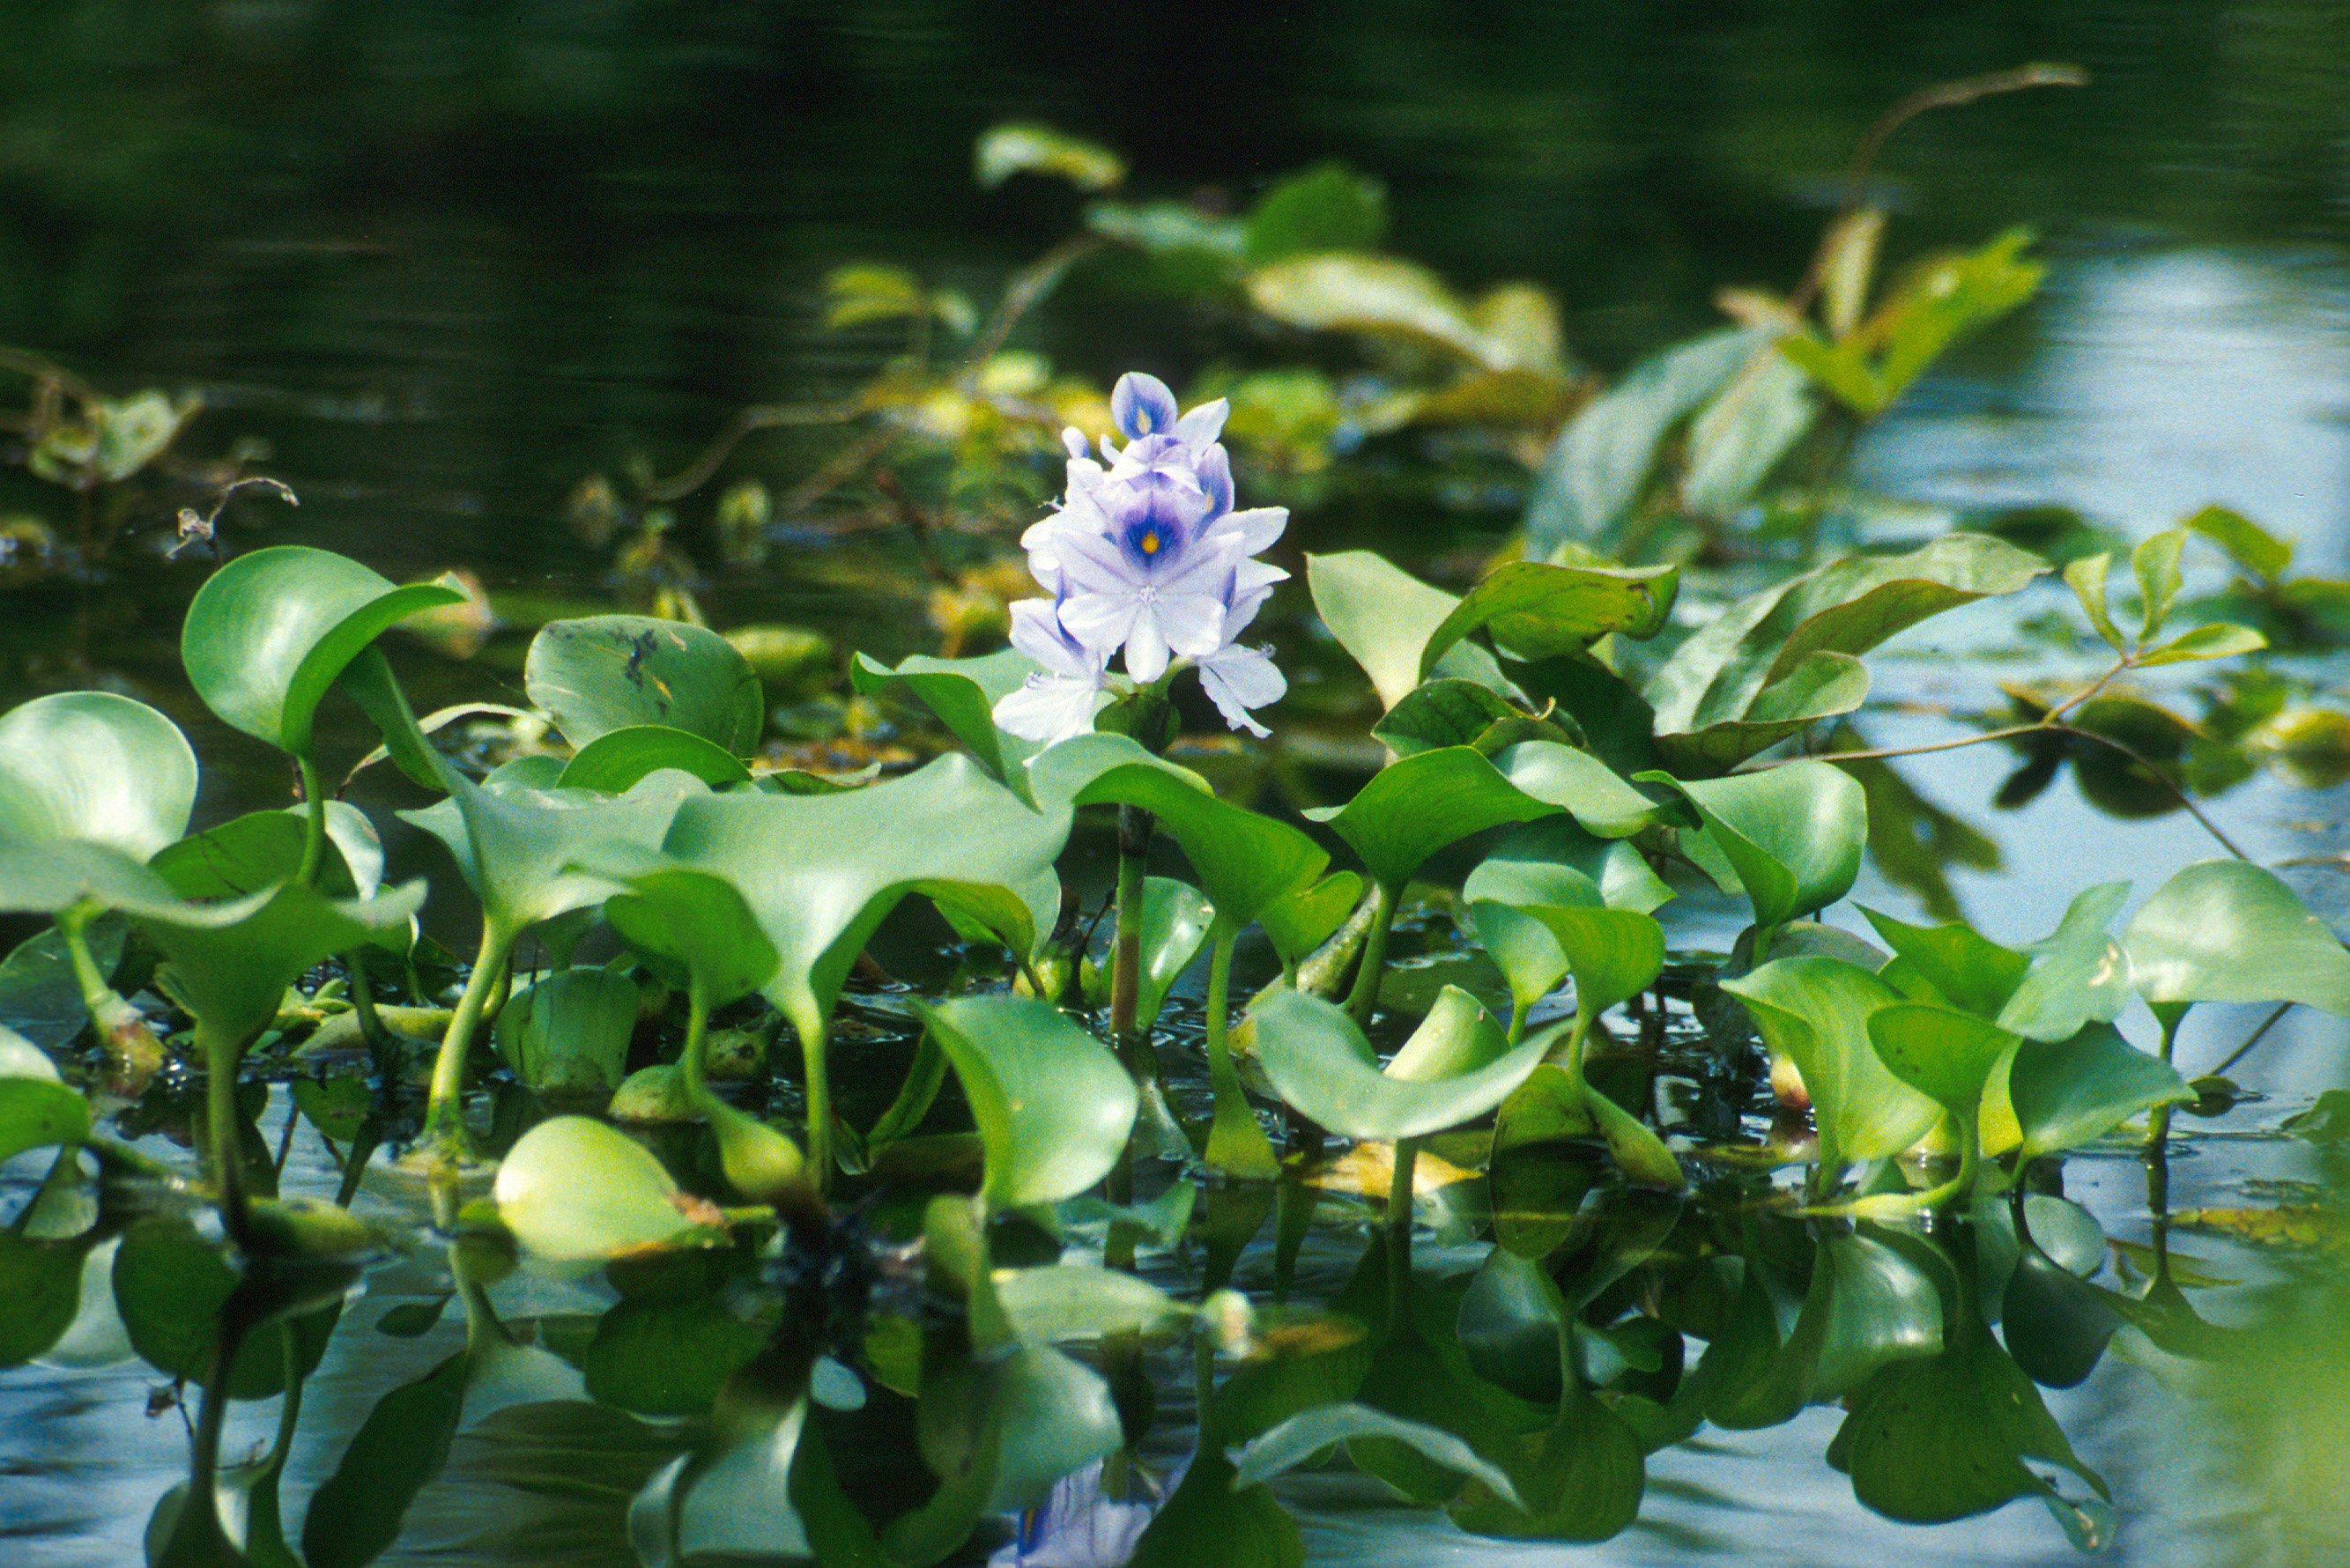 Water hyacinth (Eichhornia crassipes) close up with flower